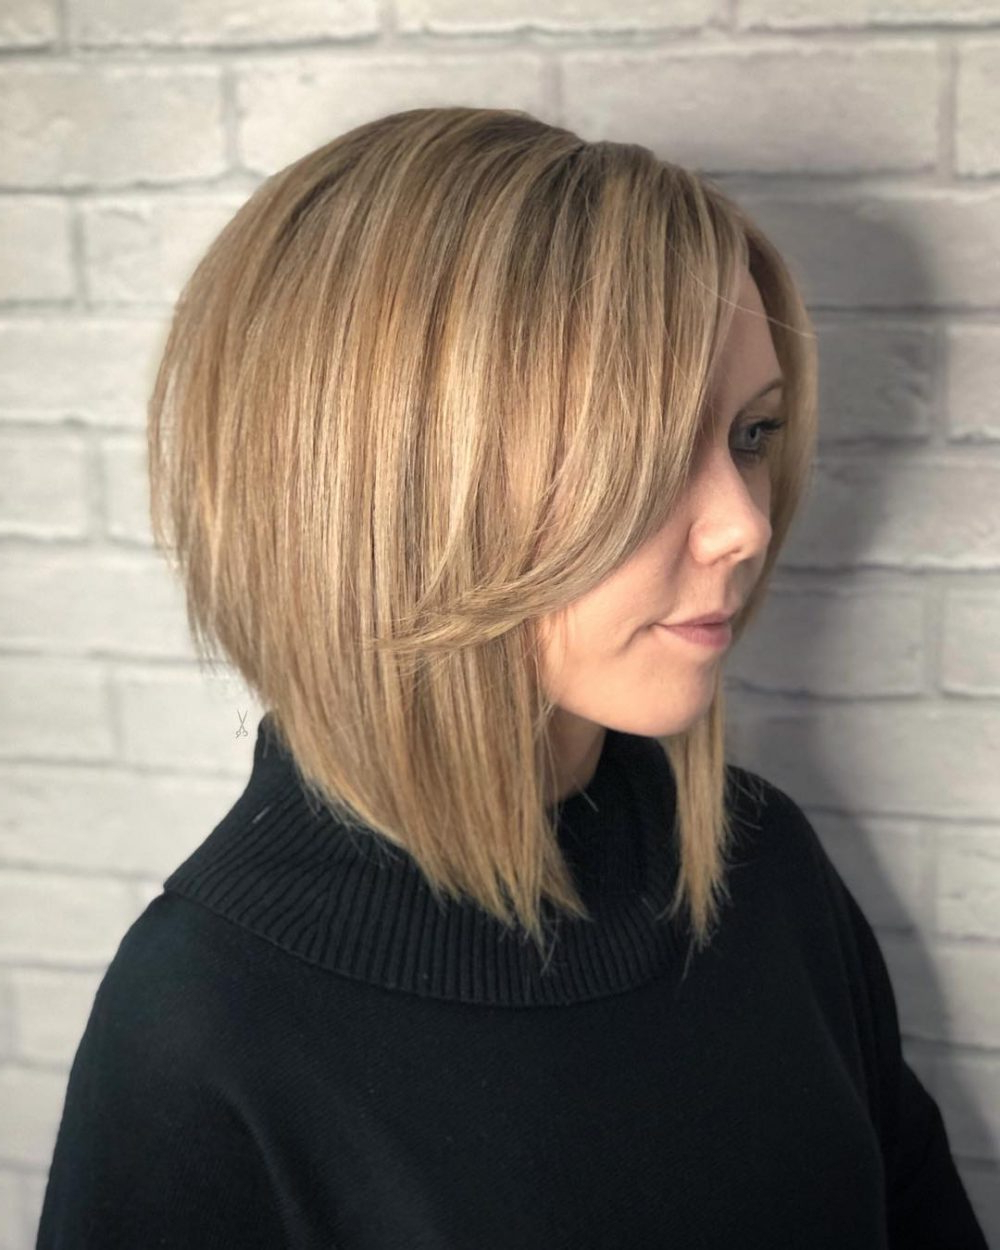 34 Greatest Short Haircuts And Hairstyles For Thick Hair For 2018 Inside Edgy Short Haircuts For Thick Hair (View 13 of 25)